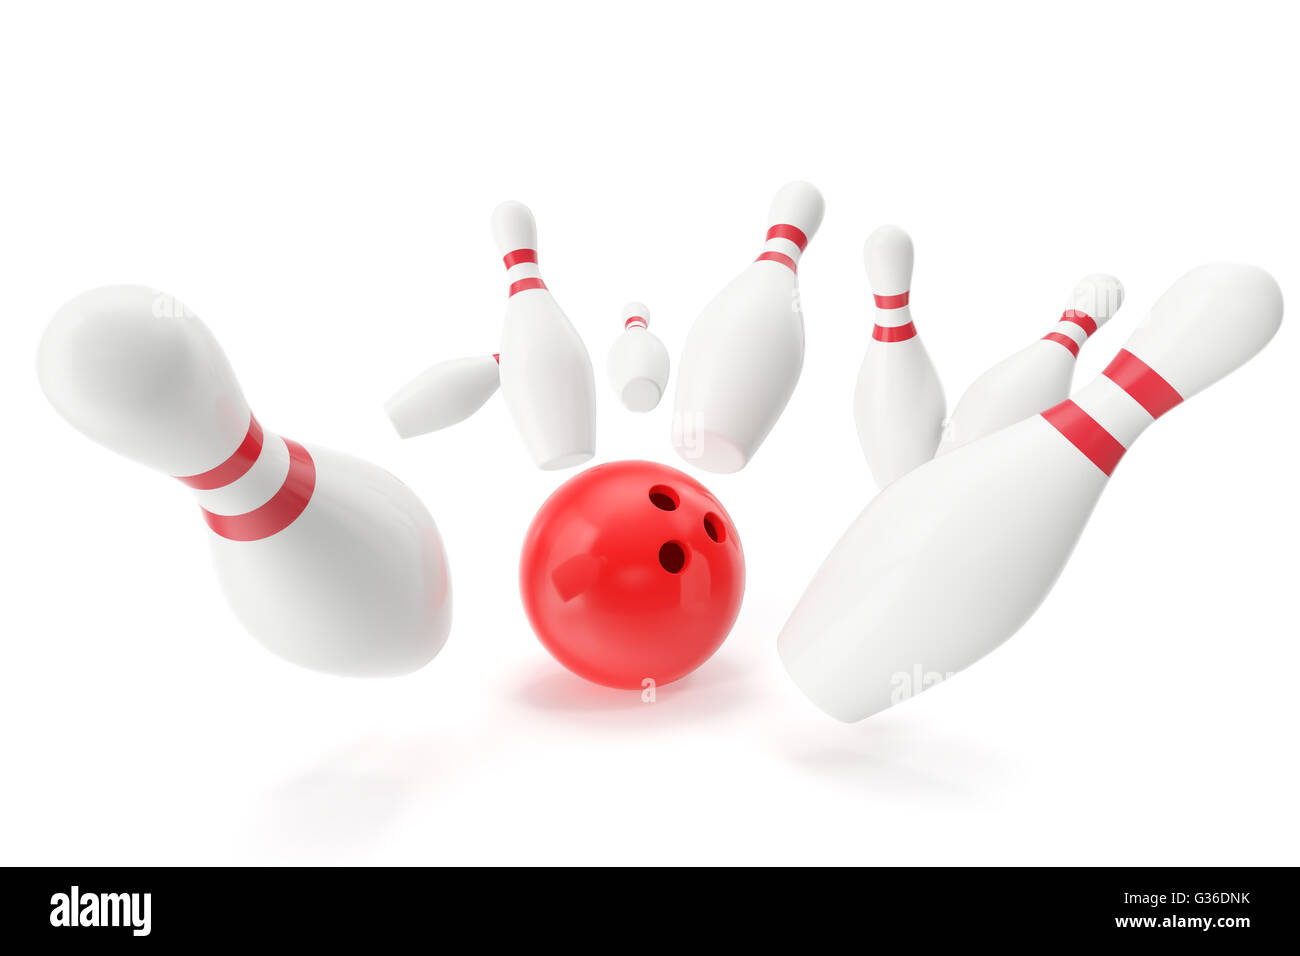 Bowling game, red ball crashing into the skittles. 3d illustration - Stock Image